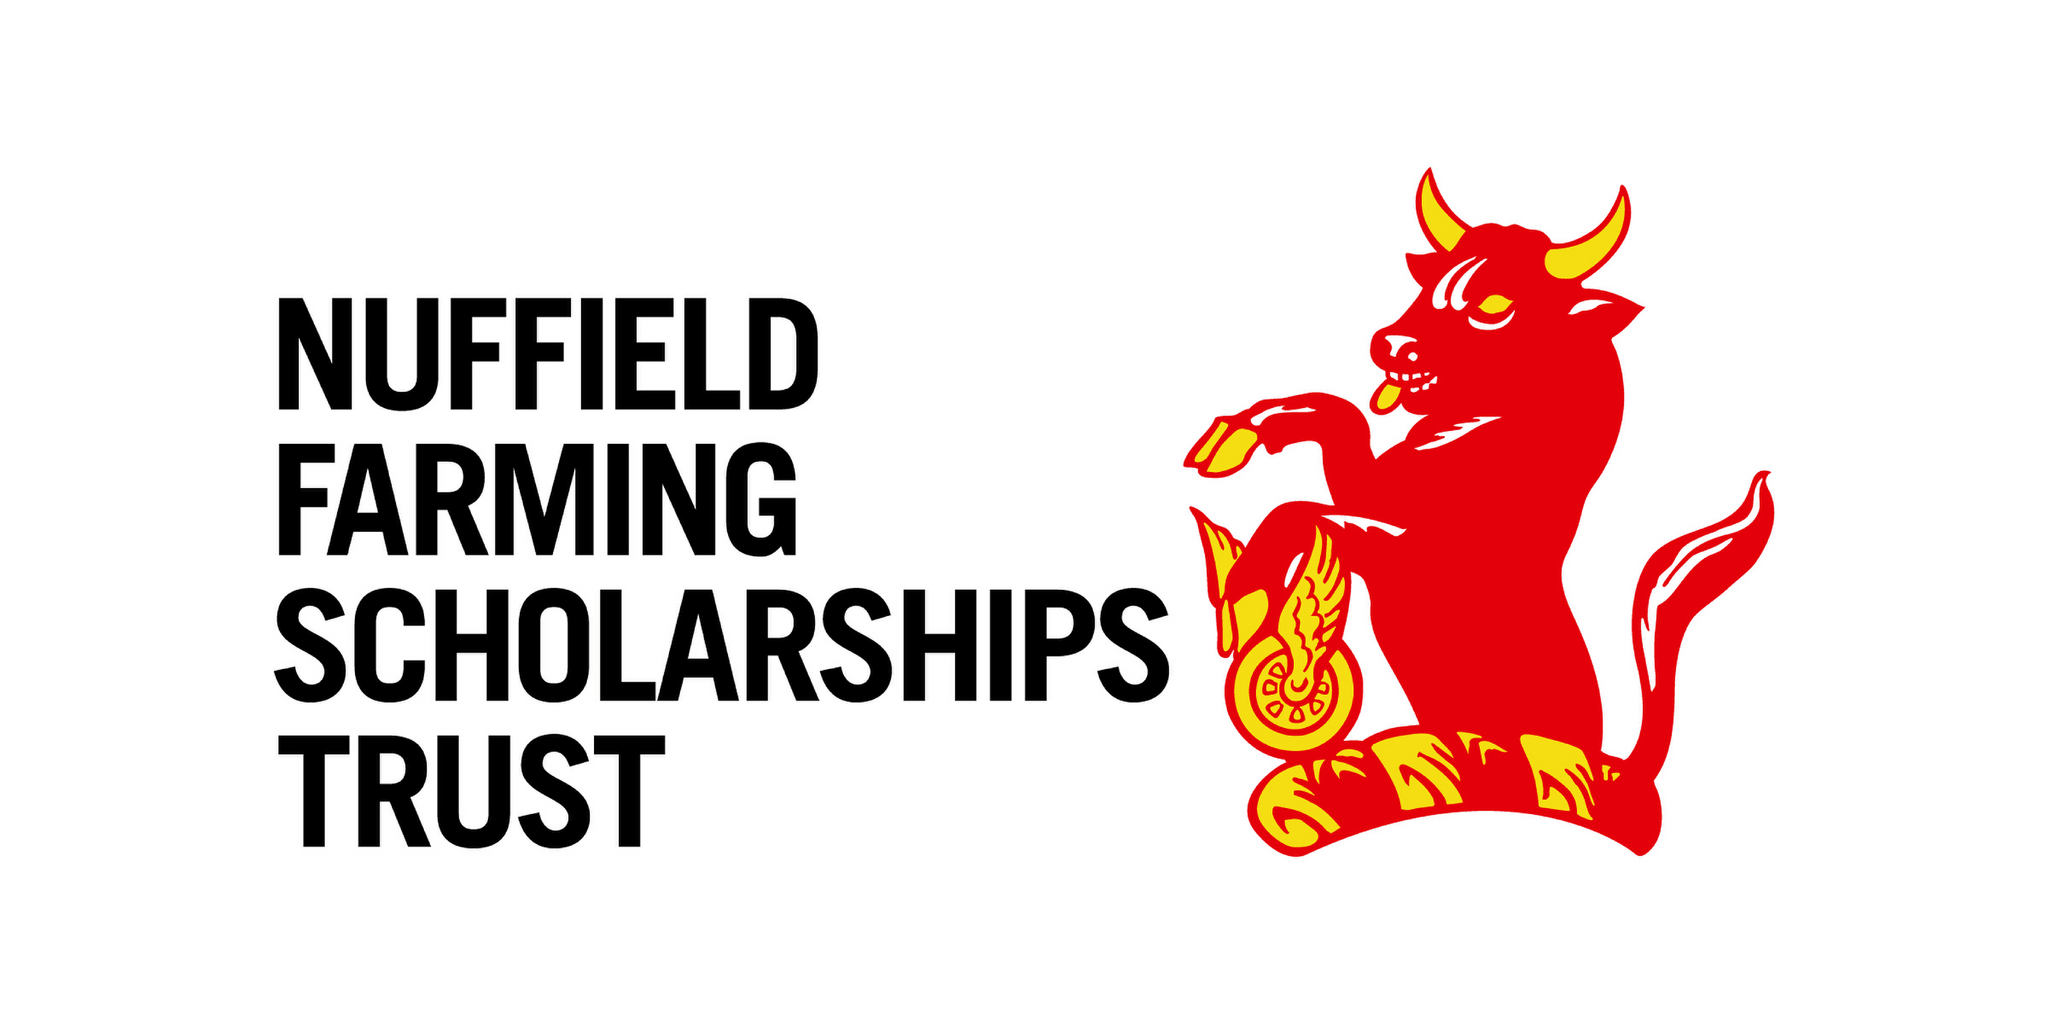 POTENTIAL NUFFIELD SCHOLARS INVITED TO RECEPTION AT CEREALS